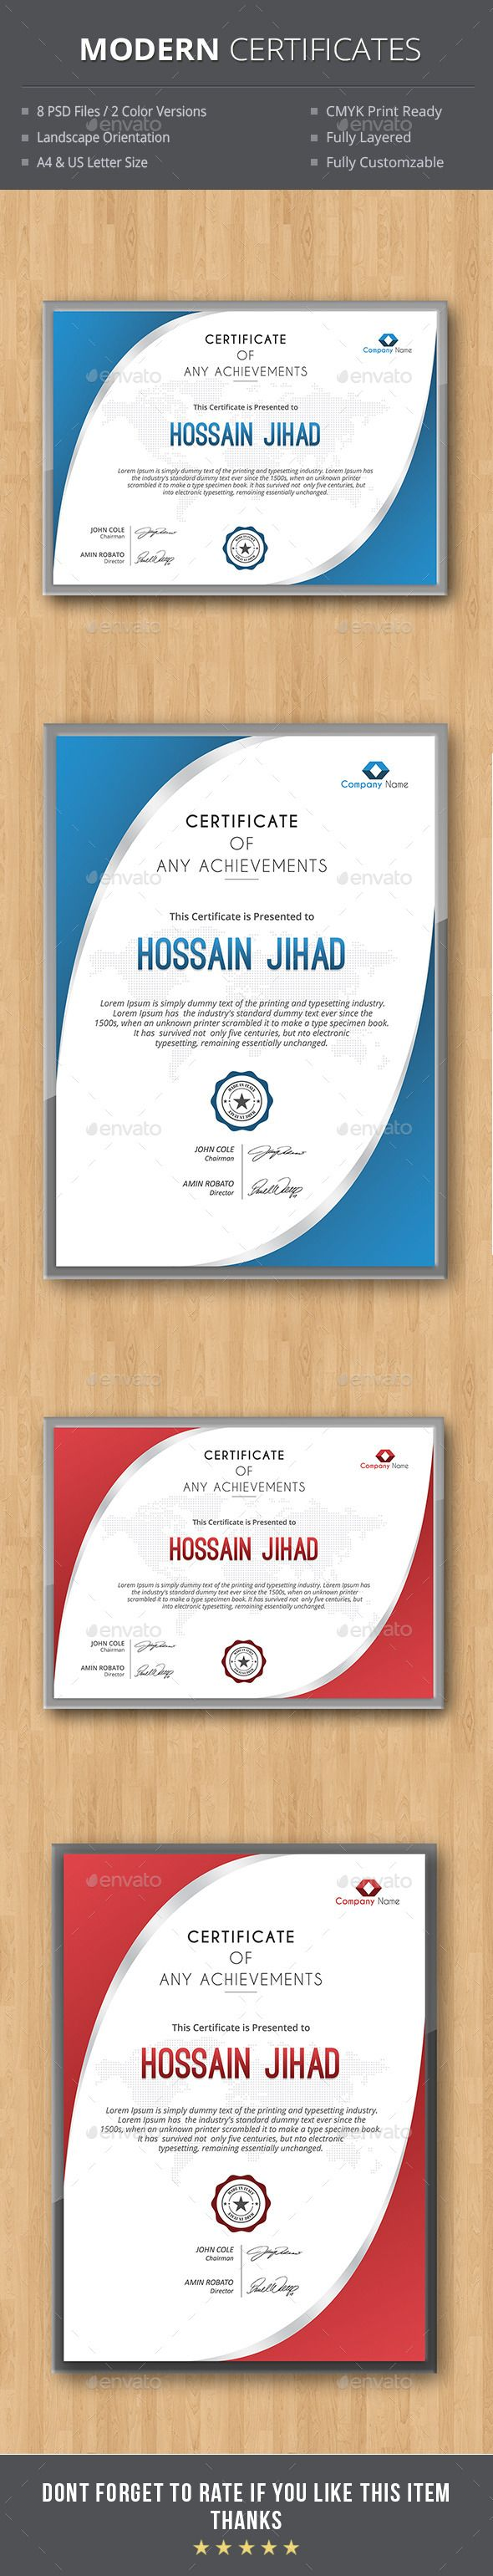 80 best diplome et certificat images on pinterest certificate modern certificates template psd download here httpgraphicriver yelopaper Choice Image